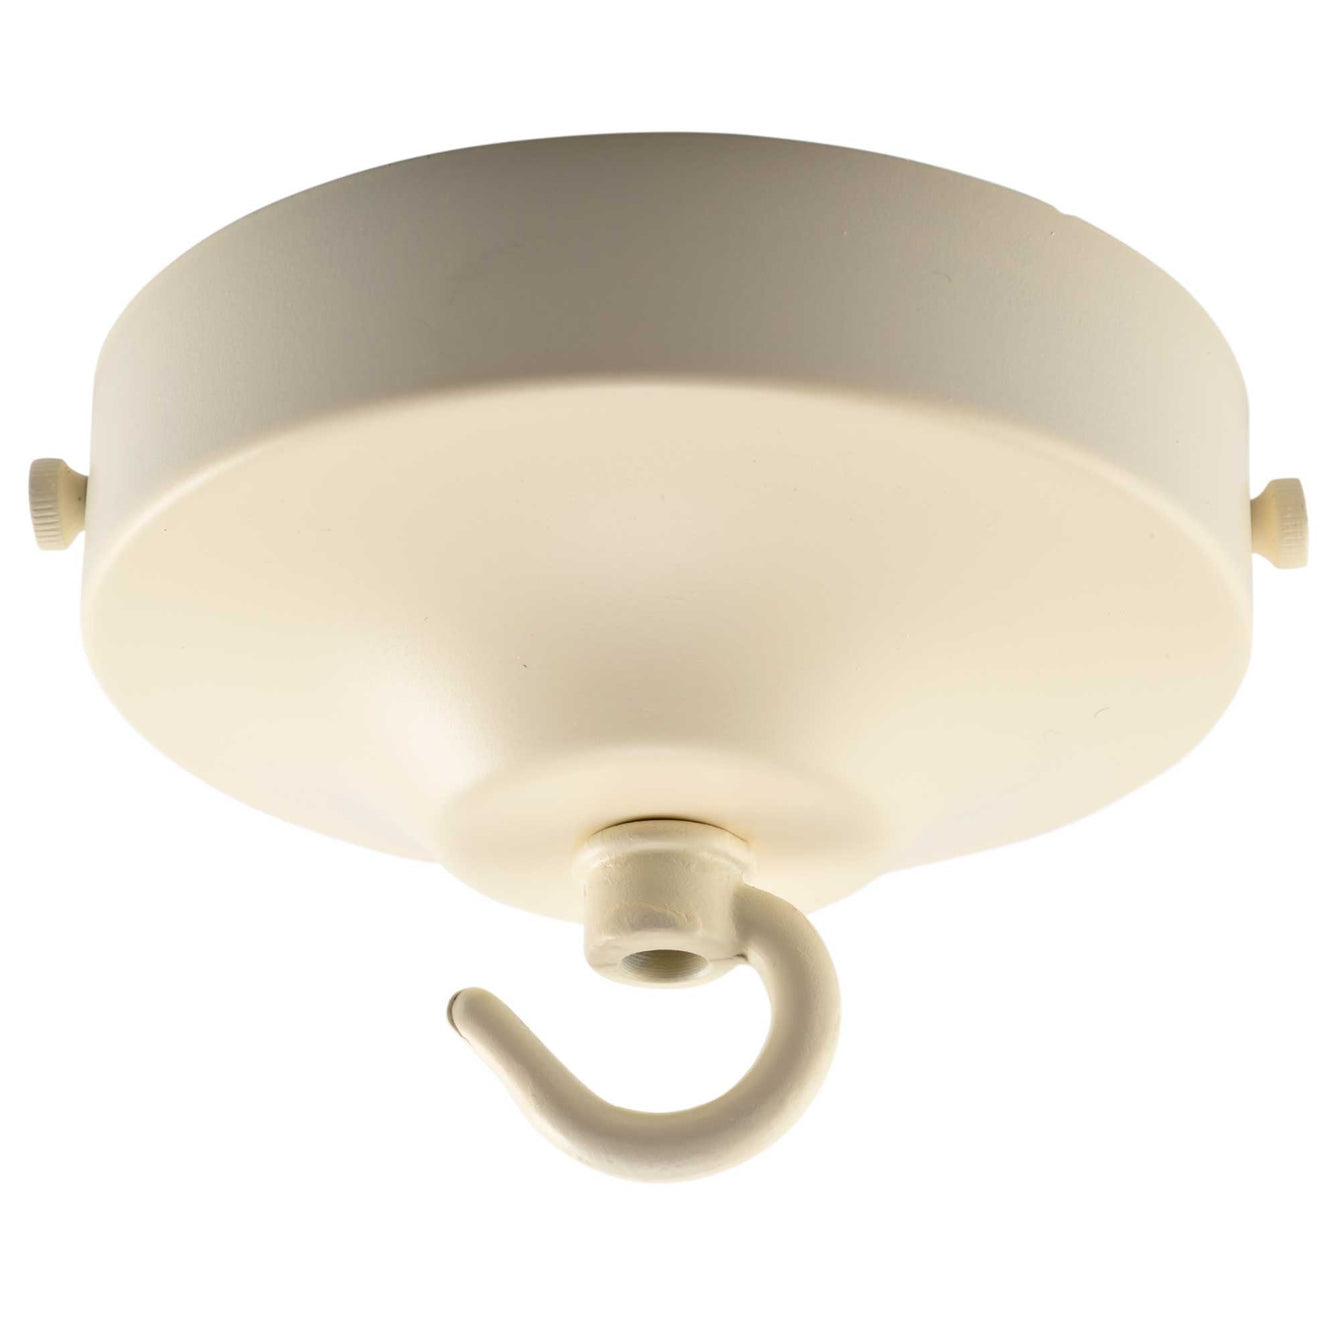 ElekTek 100mm Diameter Convex Ceiling Rose with Strap Bracket and Hook Metallic and Powder Coated Finishes